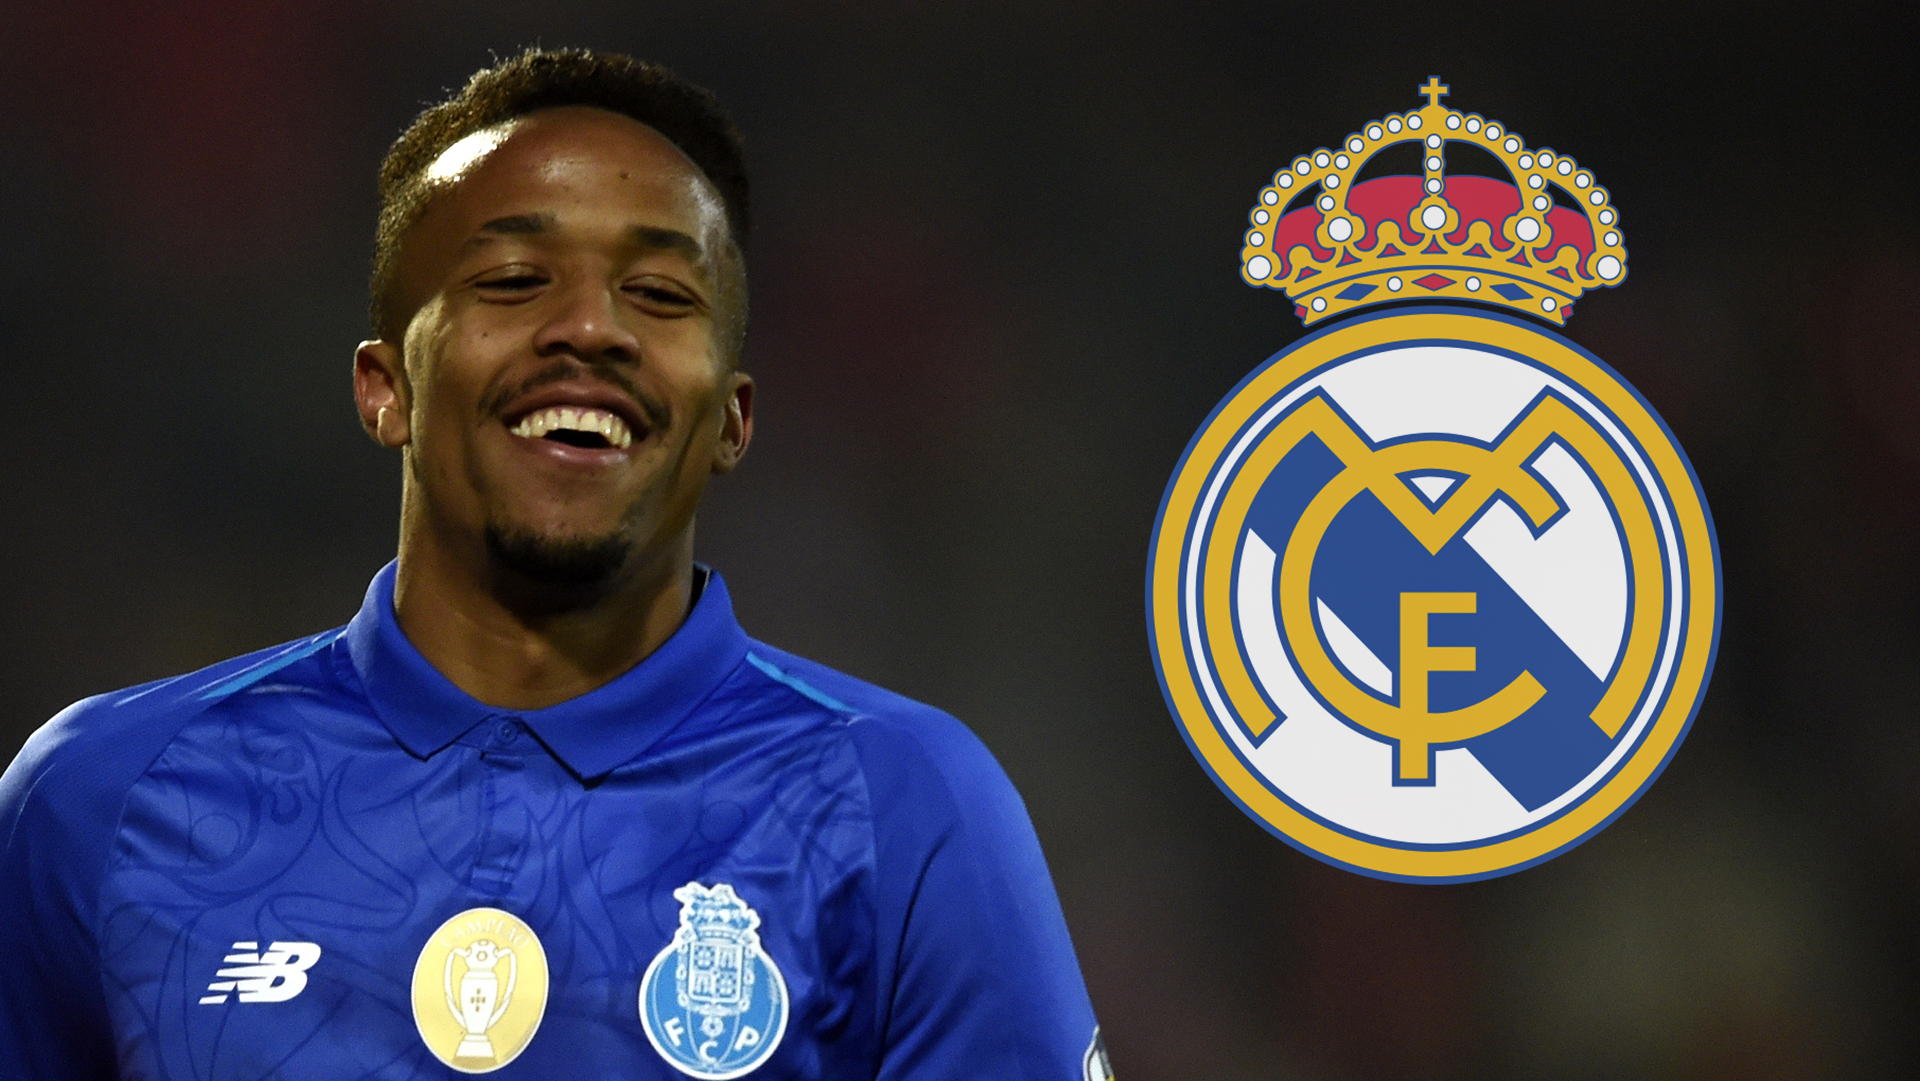 Real Madrid confirm the signing of Eder Militao